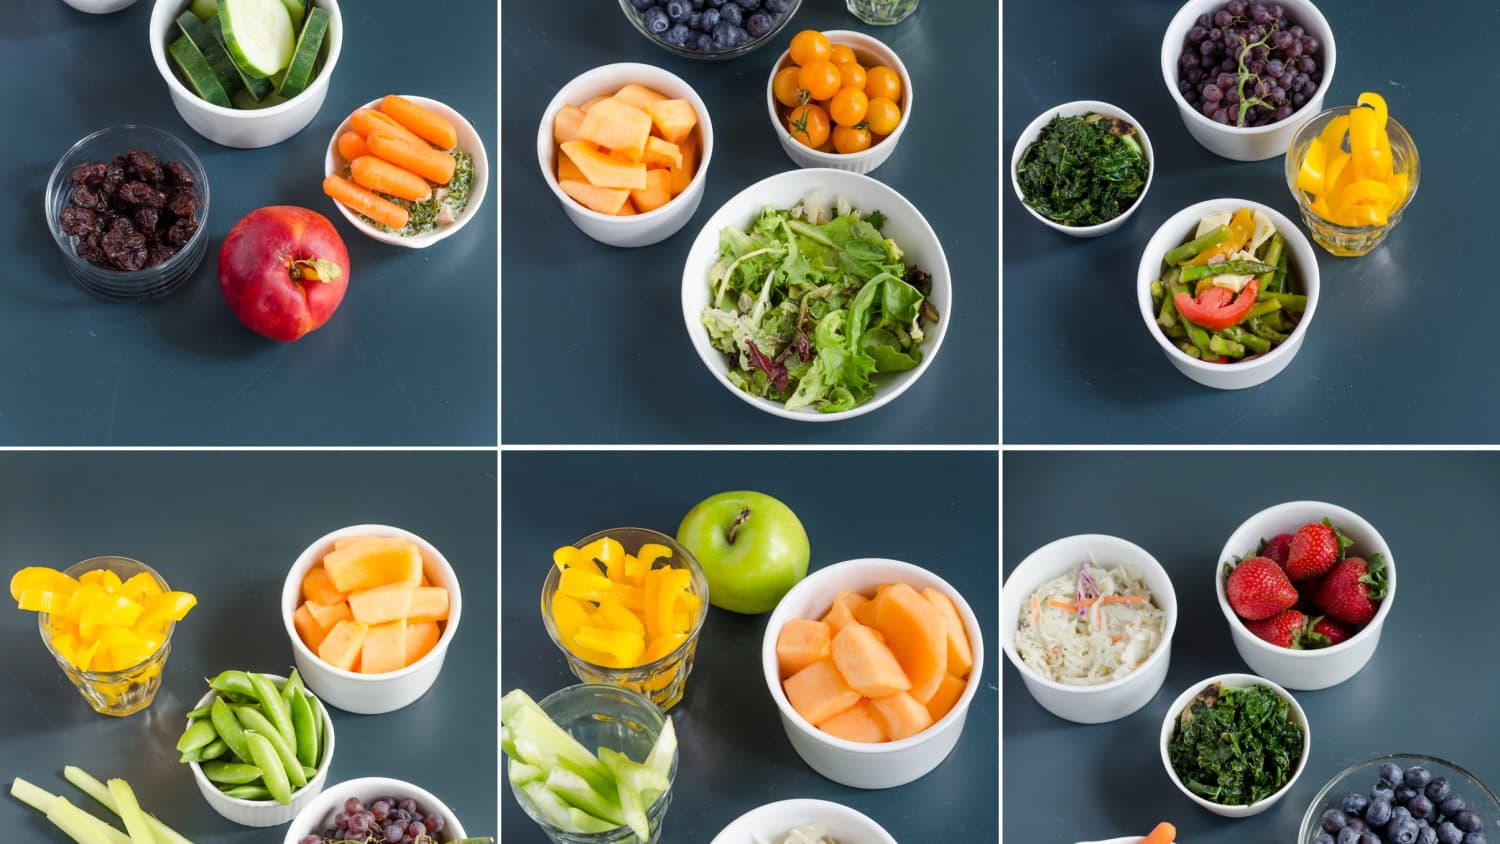 Meet the people who eat 10 portions of fruit and vegetables a day ...